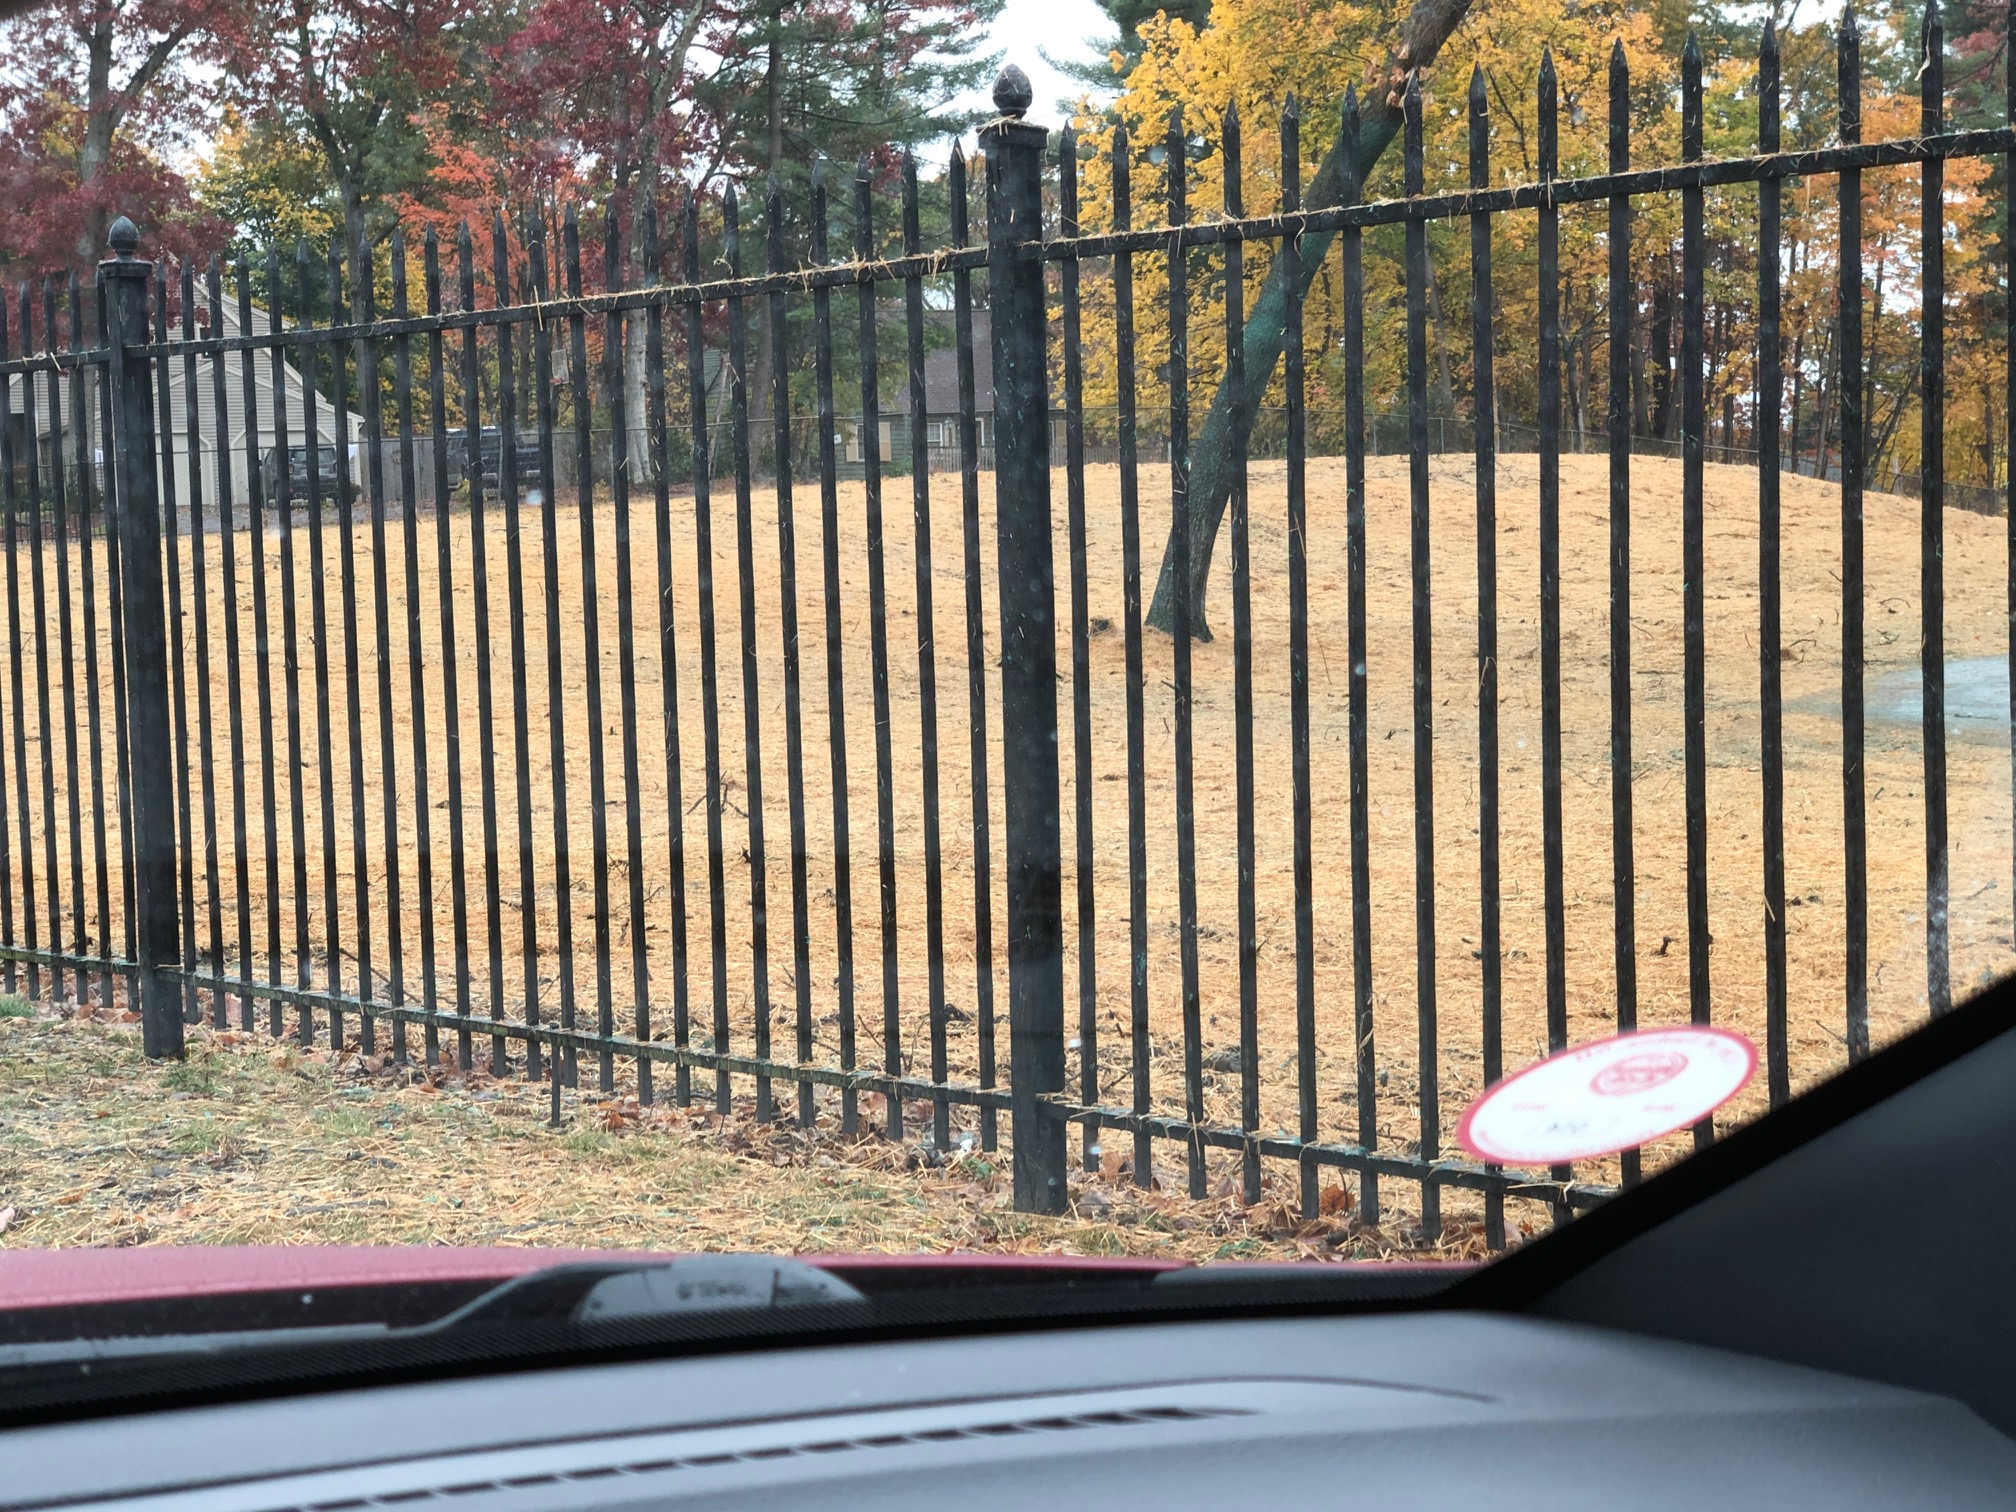 Edgewood Cemetary – Updated November 2, 2019